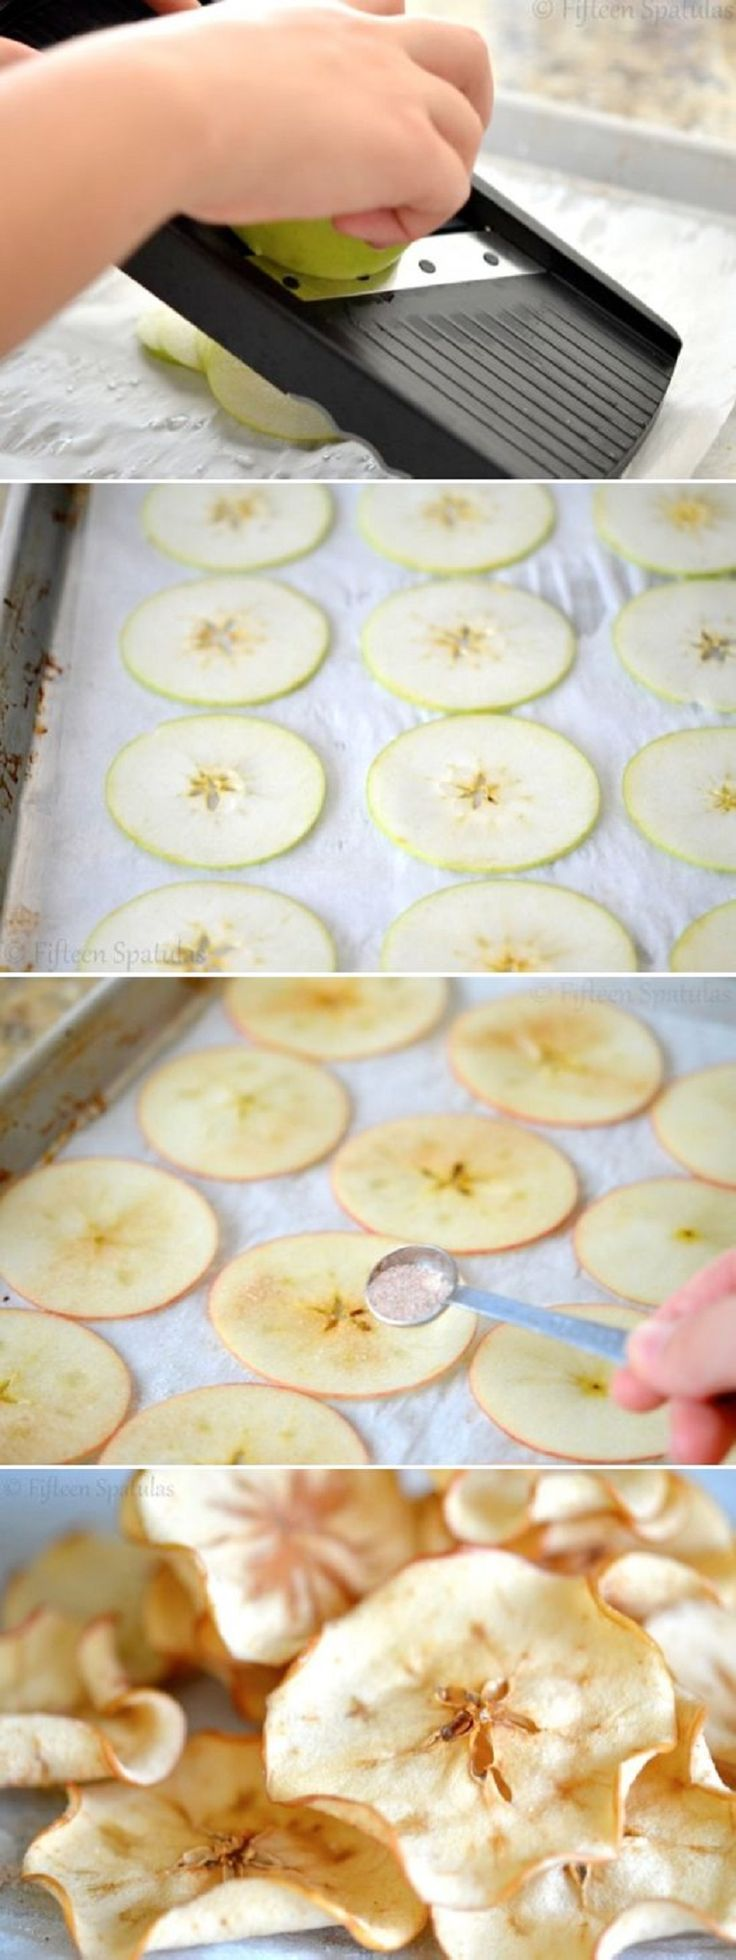 Baked Cinnamon Apple Chips - 11 Healthy Office Snacks | GleamItUp